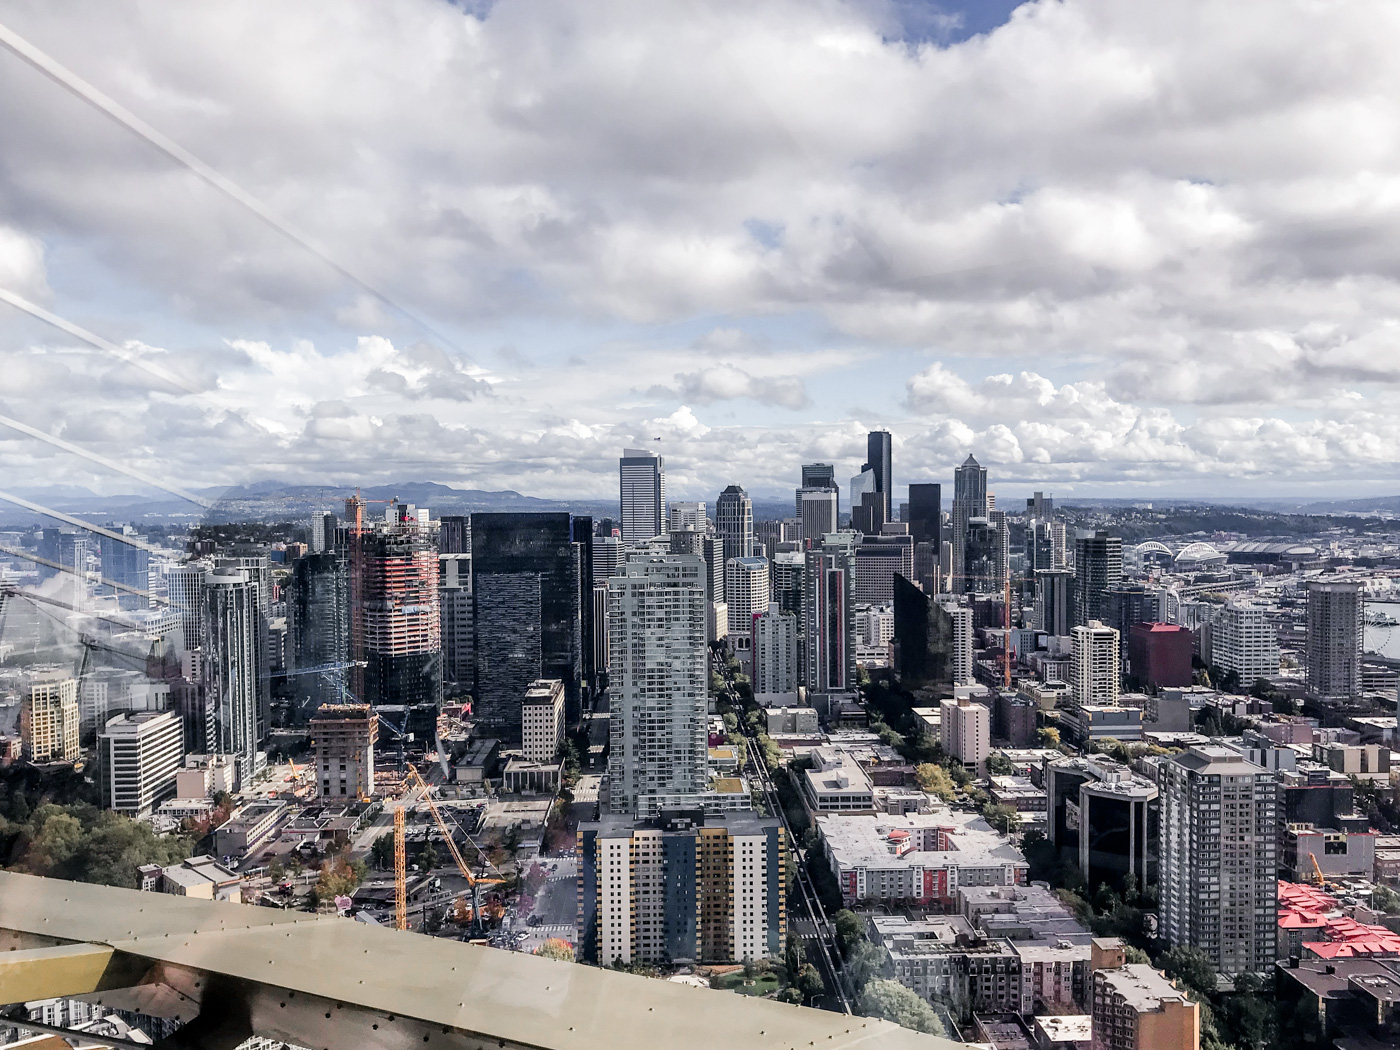 Top of the Space Needle in Seattle